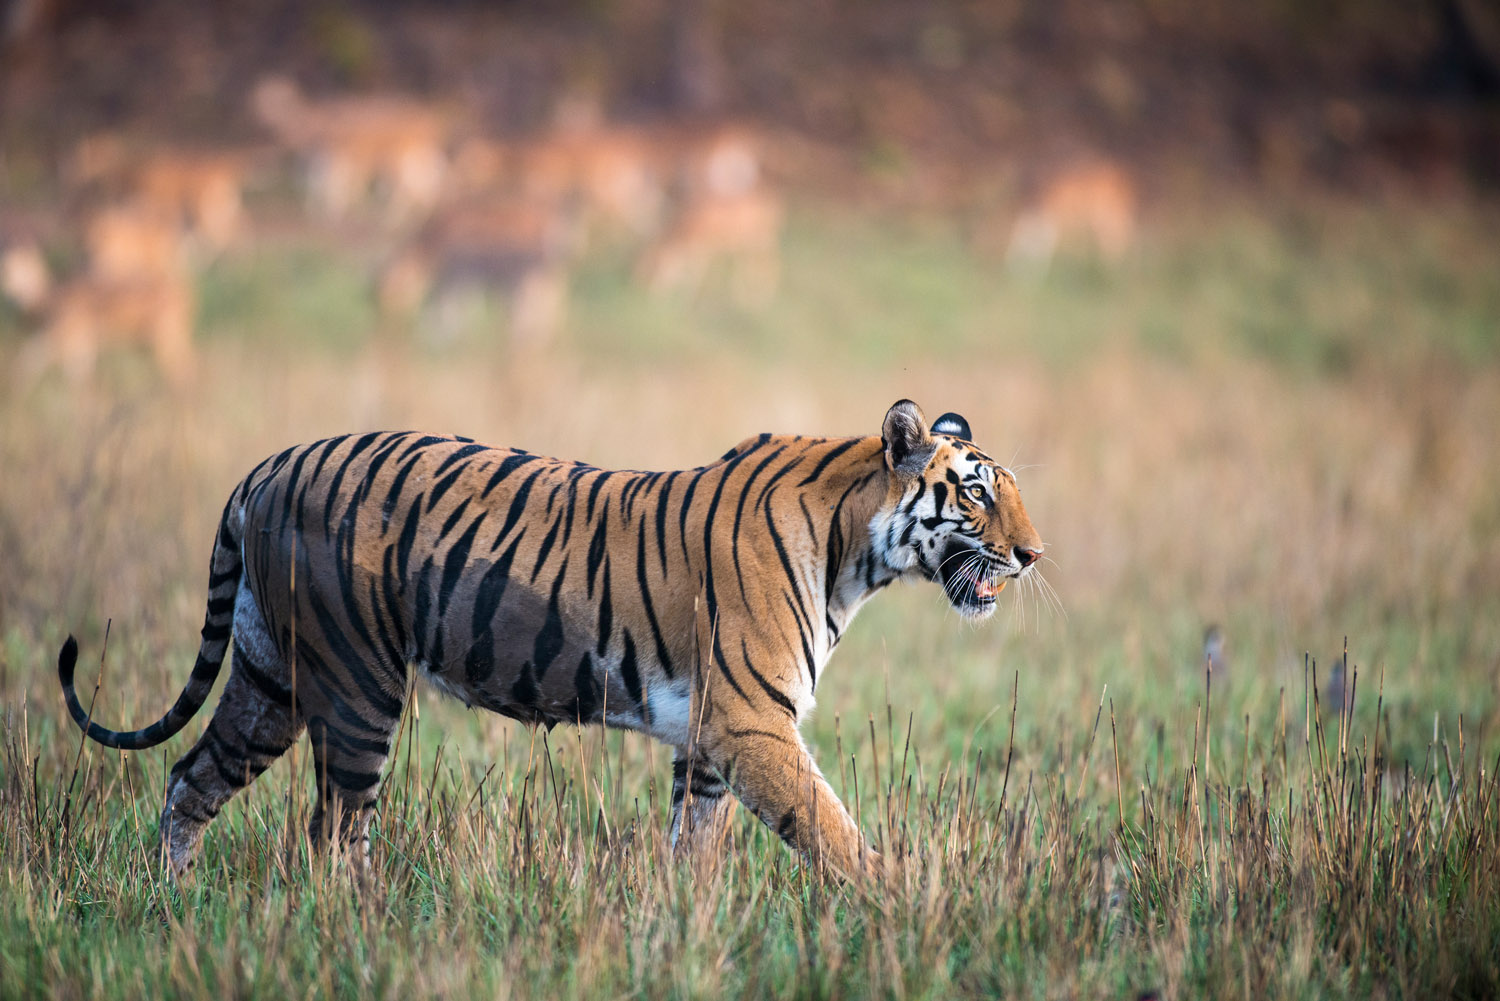 Bengal tigress walking across meadow (chital/spotted deer in background), Bandhavgarh National Park, Madhya Pradesh, India